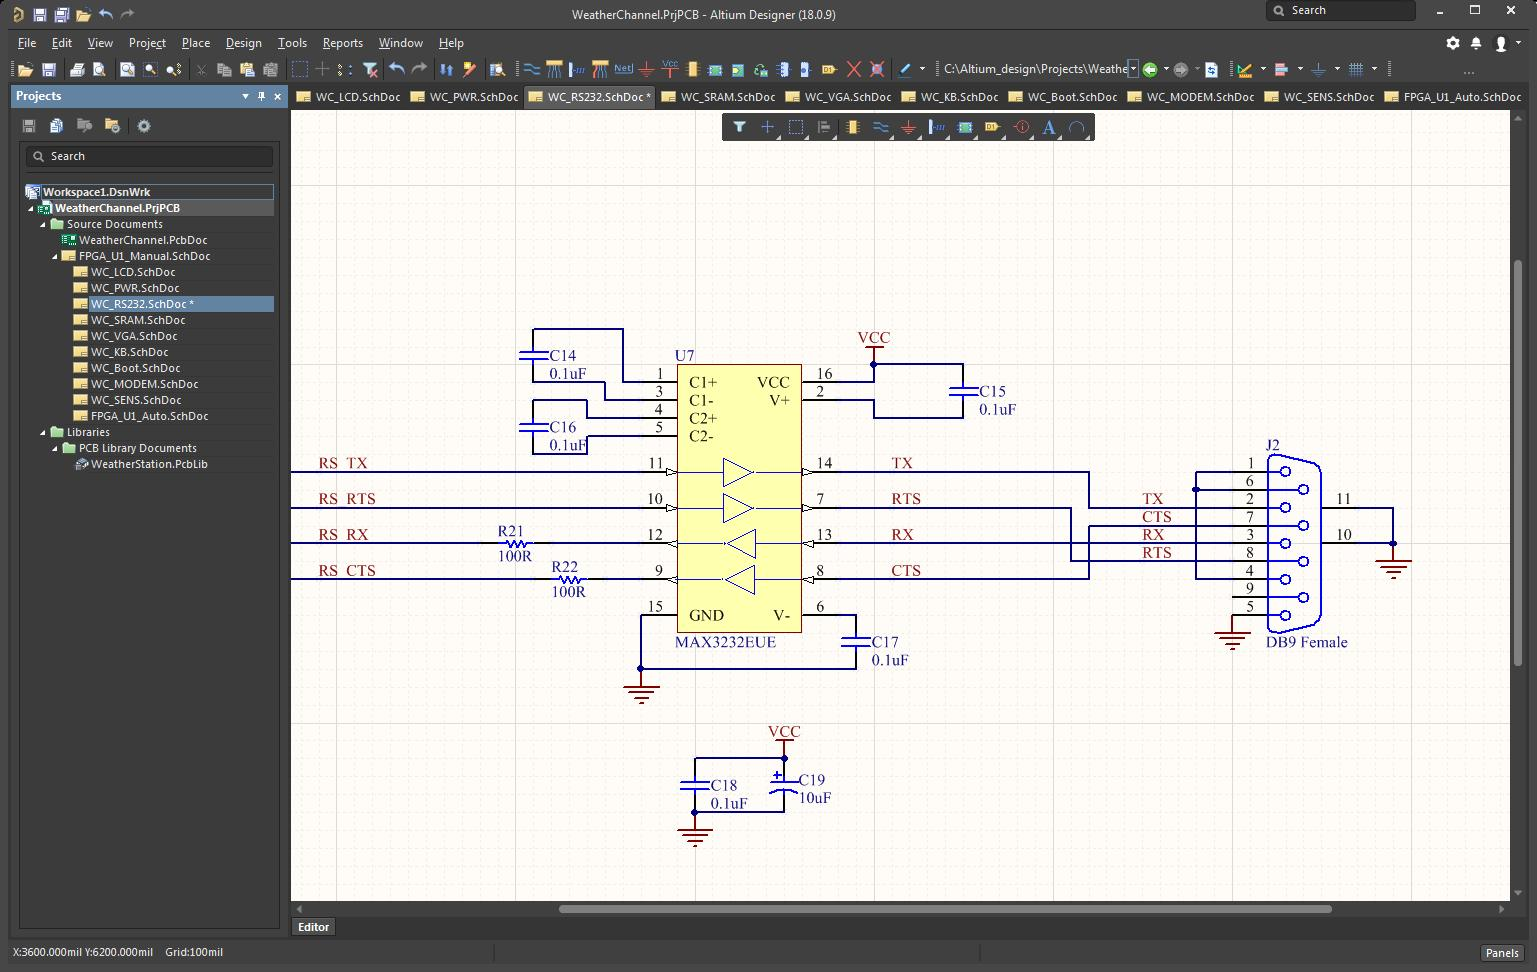 Even Simple Schematic Drawing Software Is Better Than Pencil And Circuit Digest Electronic Circuits Projects Community Picture Of Altium 18s Capture Application